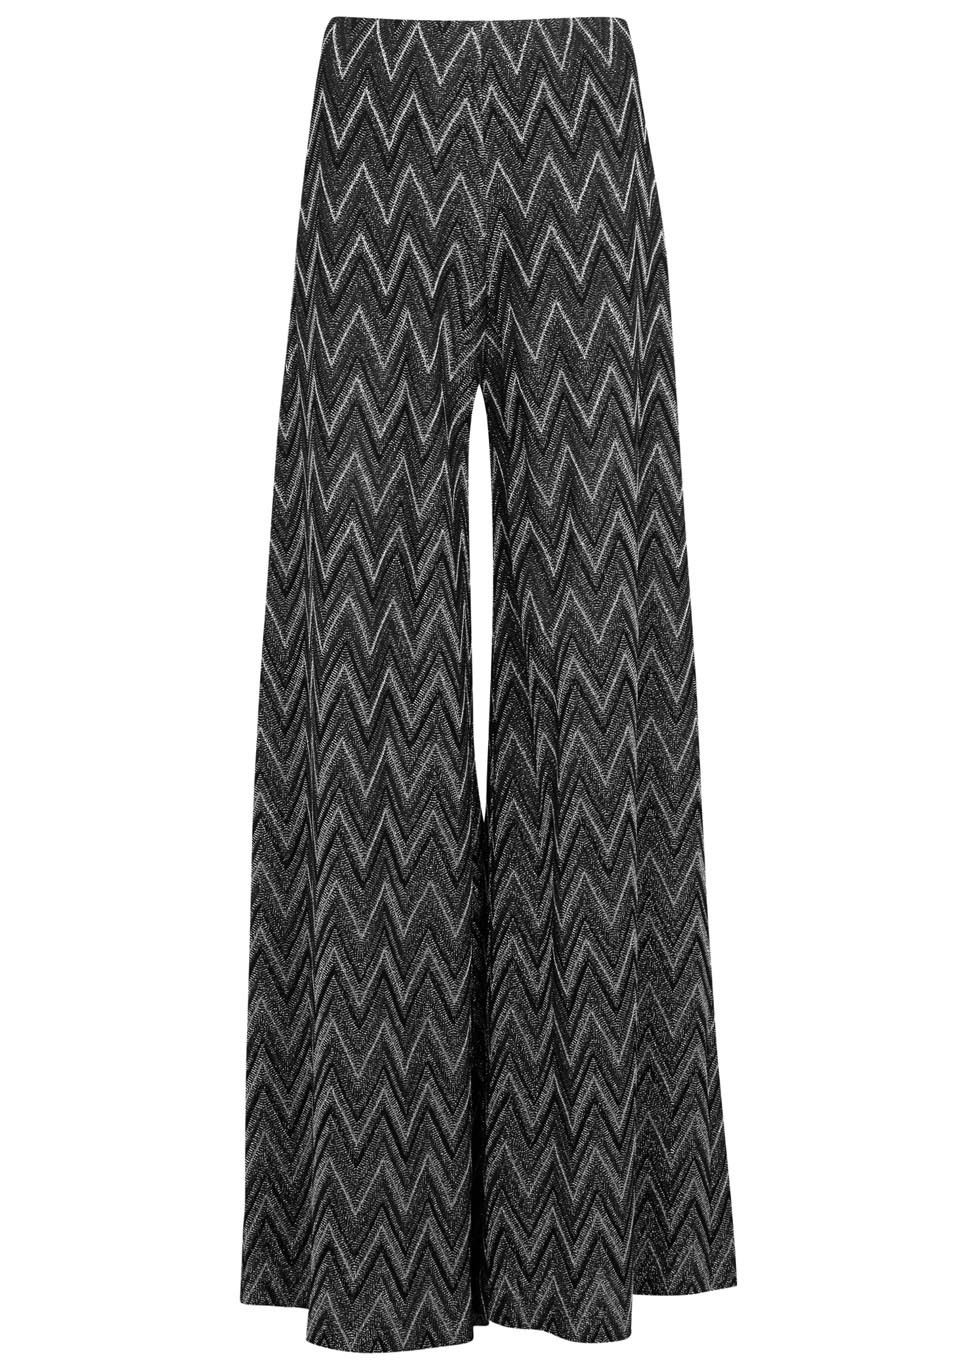 Metallic Zigzag Wide Leg Trousers - length: standard; waist: mid/regular rise; predominant colour: charcoal; secondary colour: light grey; occasions: casual; fibres: cotton - mix; fit: wide leg; pattern type: fabric; pattern: patterned/print; texture group: jersey - stretchy/drapey; style: standard; multicoloured: multicoloured; season: s/s 2016; wardrobe: highlight